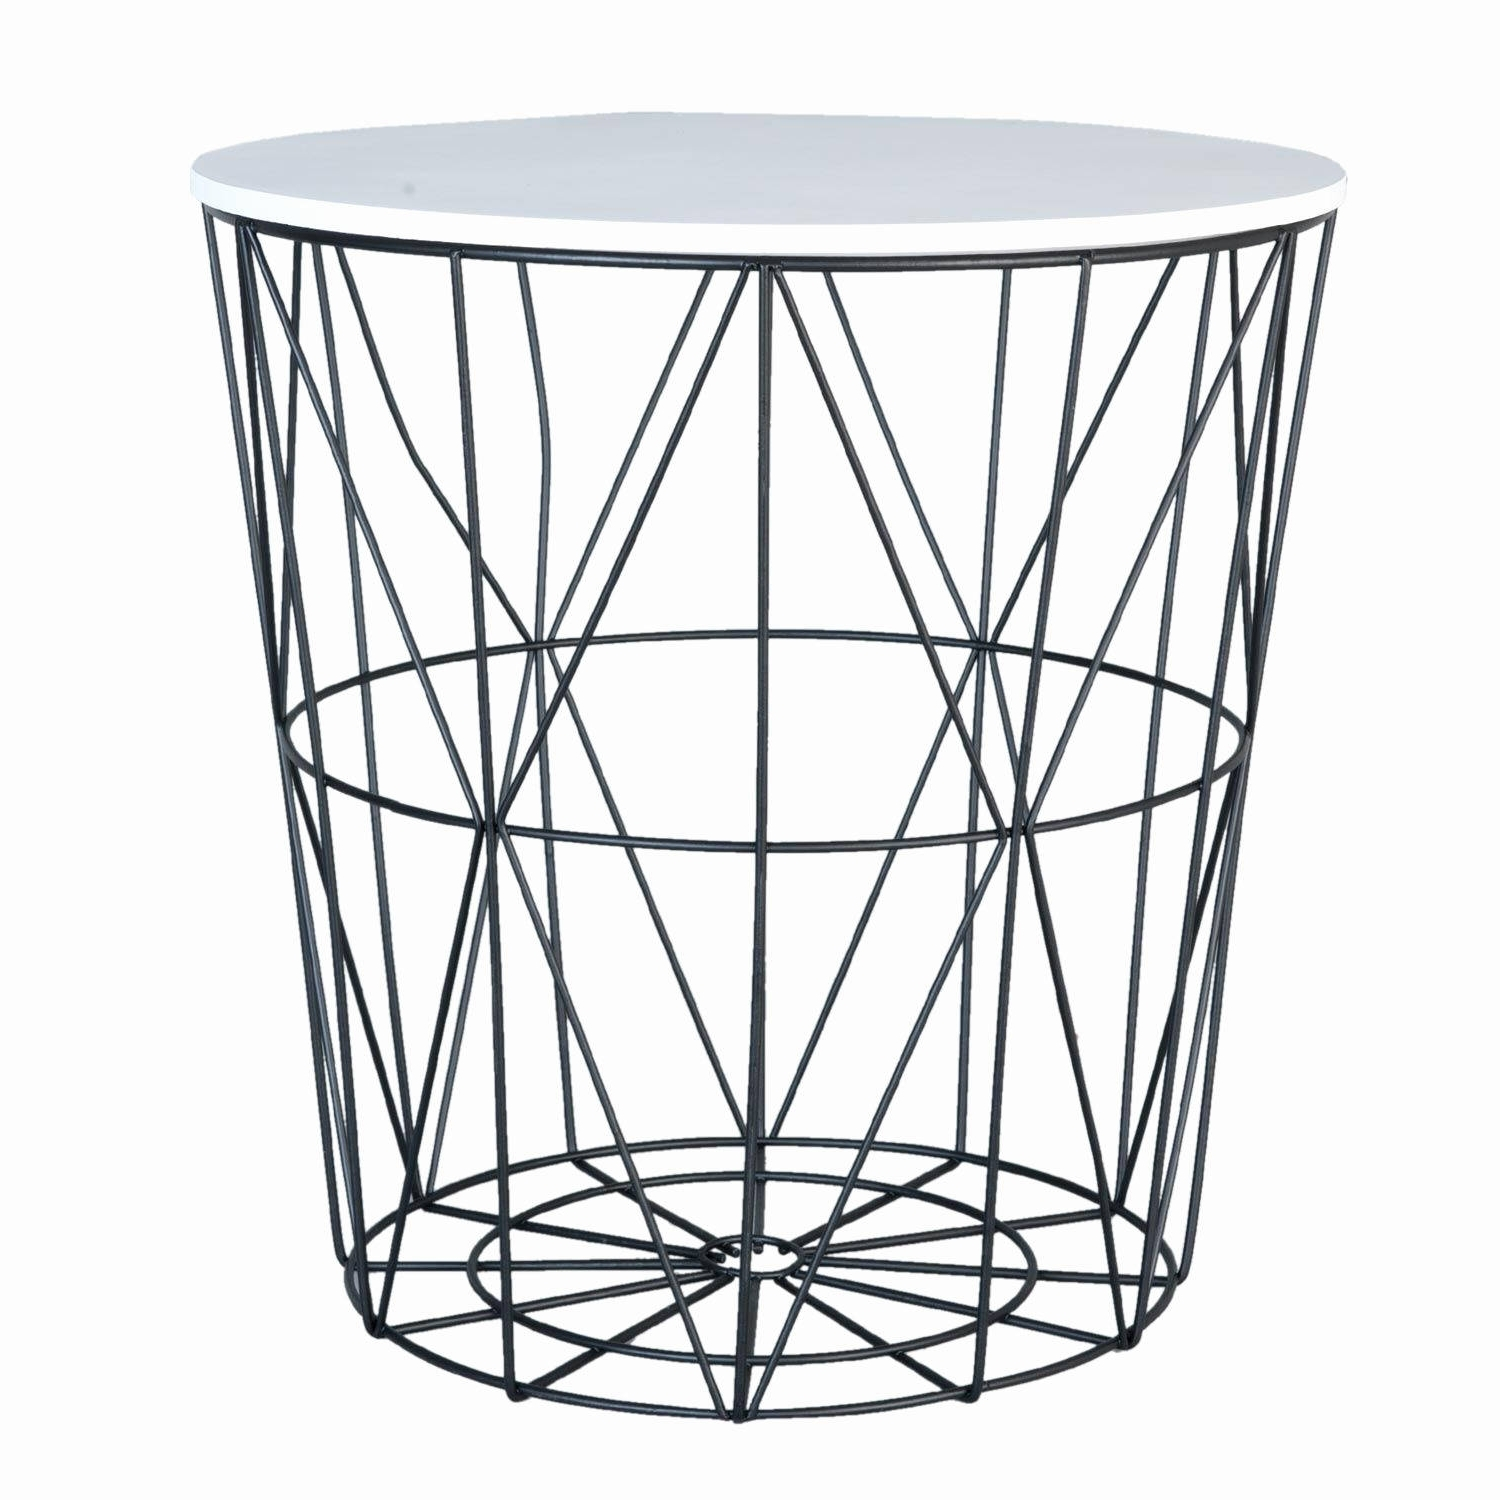 White Coffee Table Black Legs Awesome White Black Geometric Side With Widely Used Black Wire Coffee Tables (View 14 of 20)